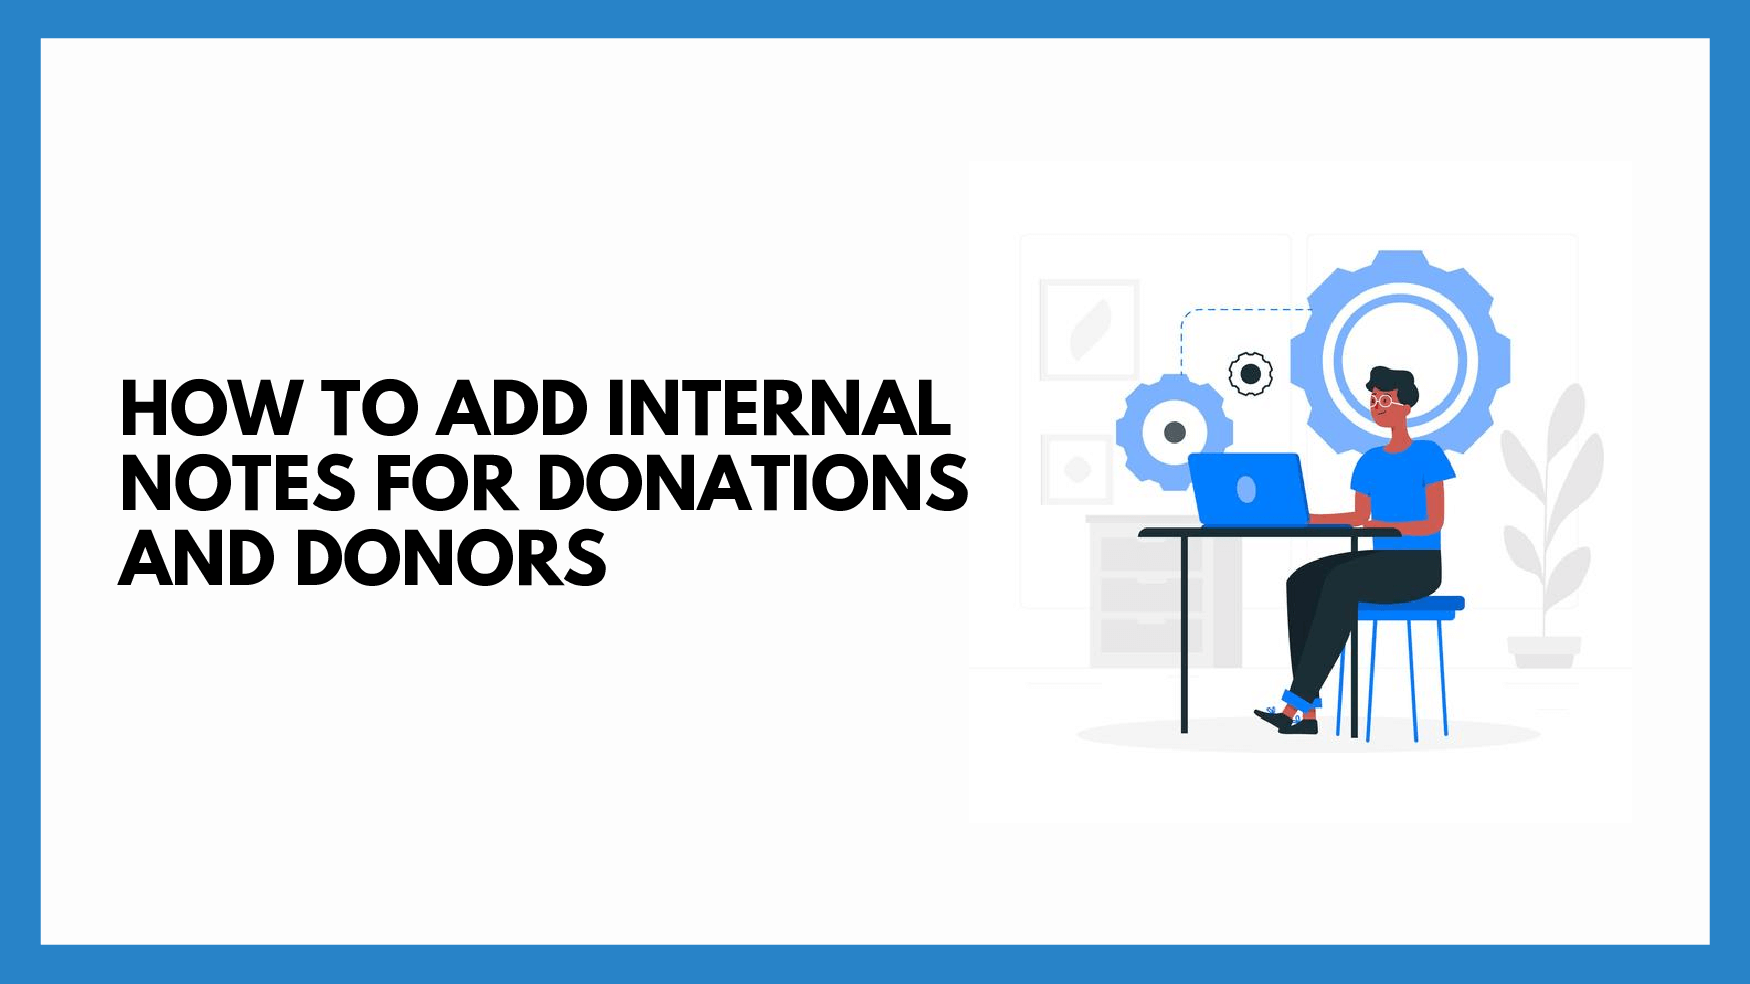 How To Add Internal Notes for Donations and Donors